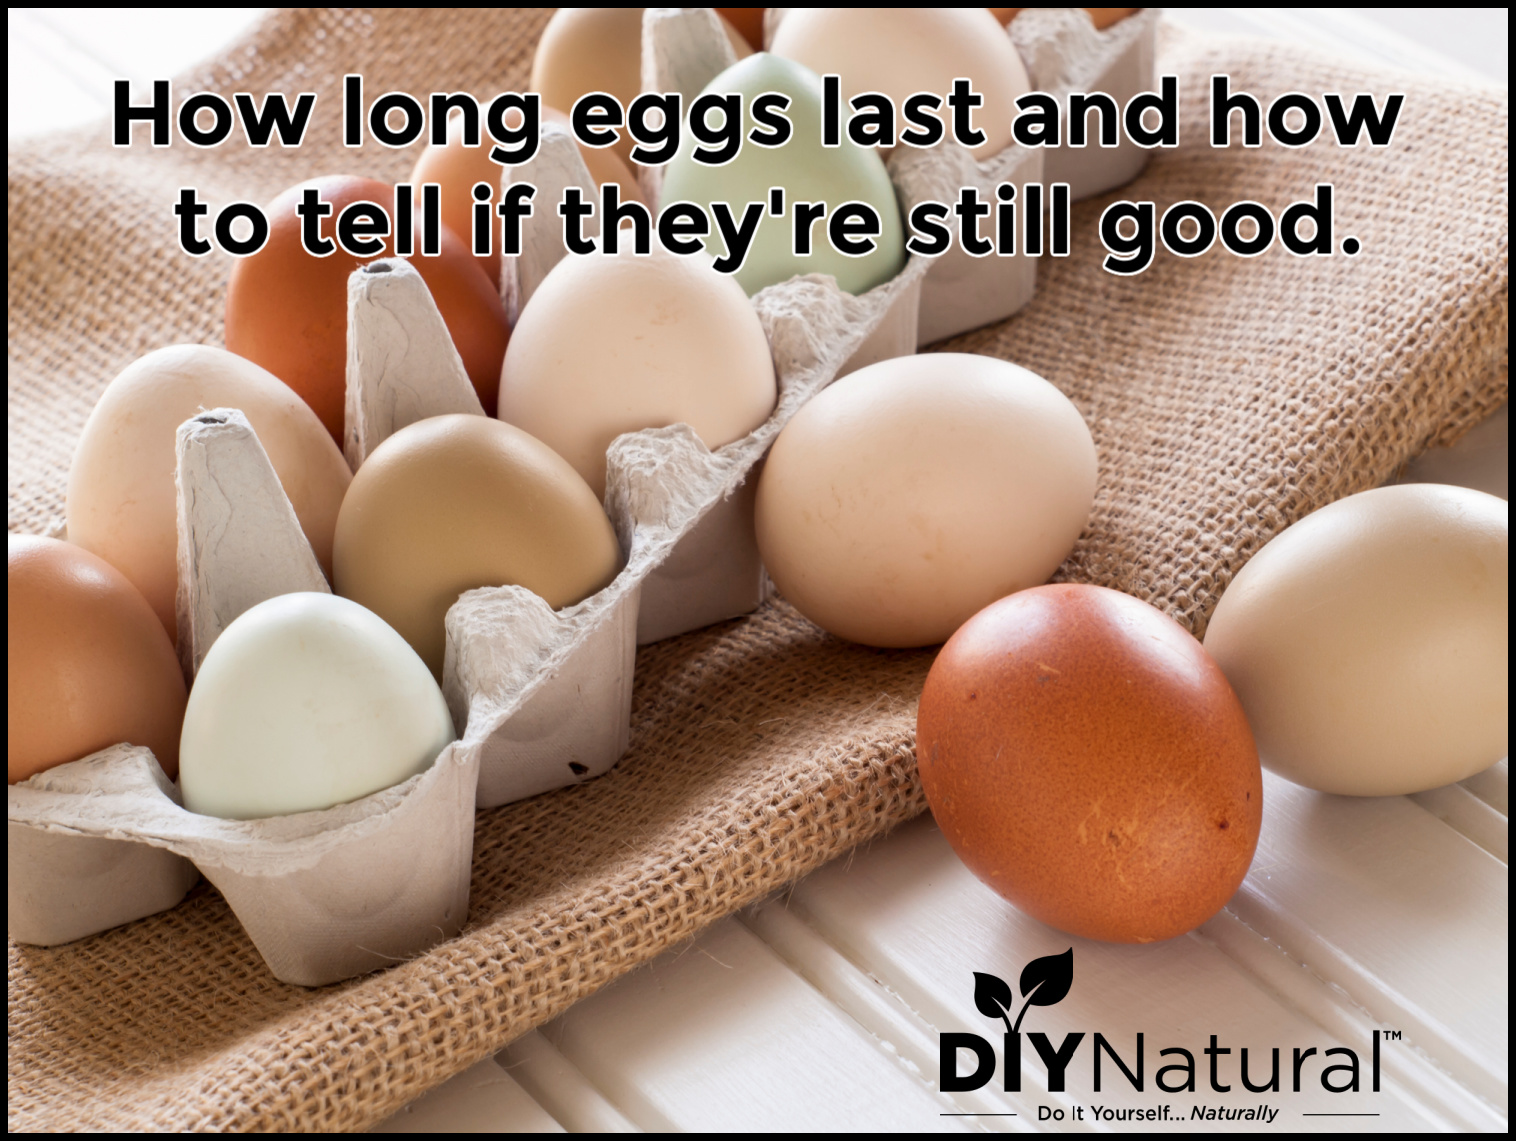 How Long Eggs Last and How to Tell if They're Fresh